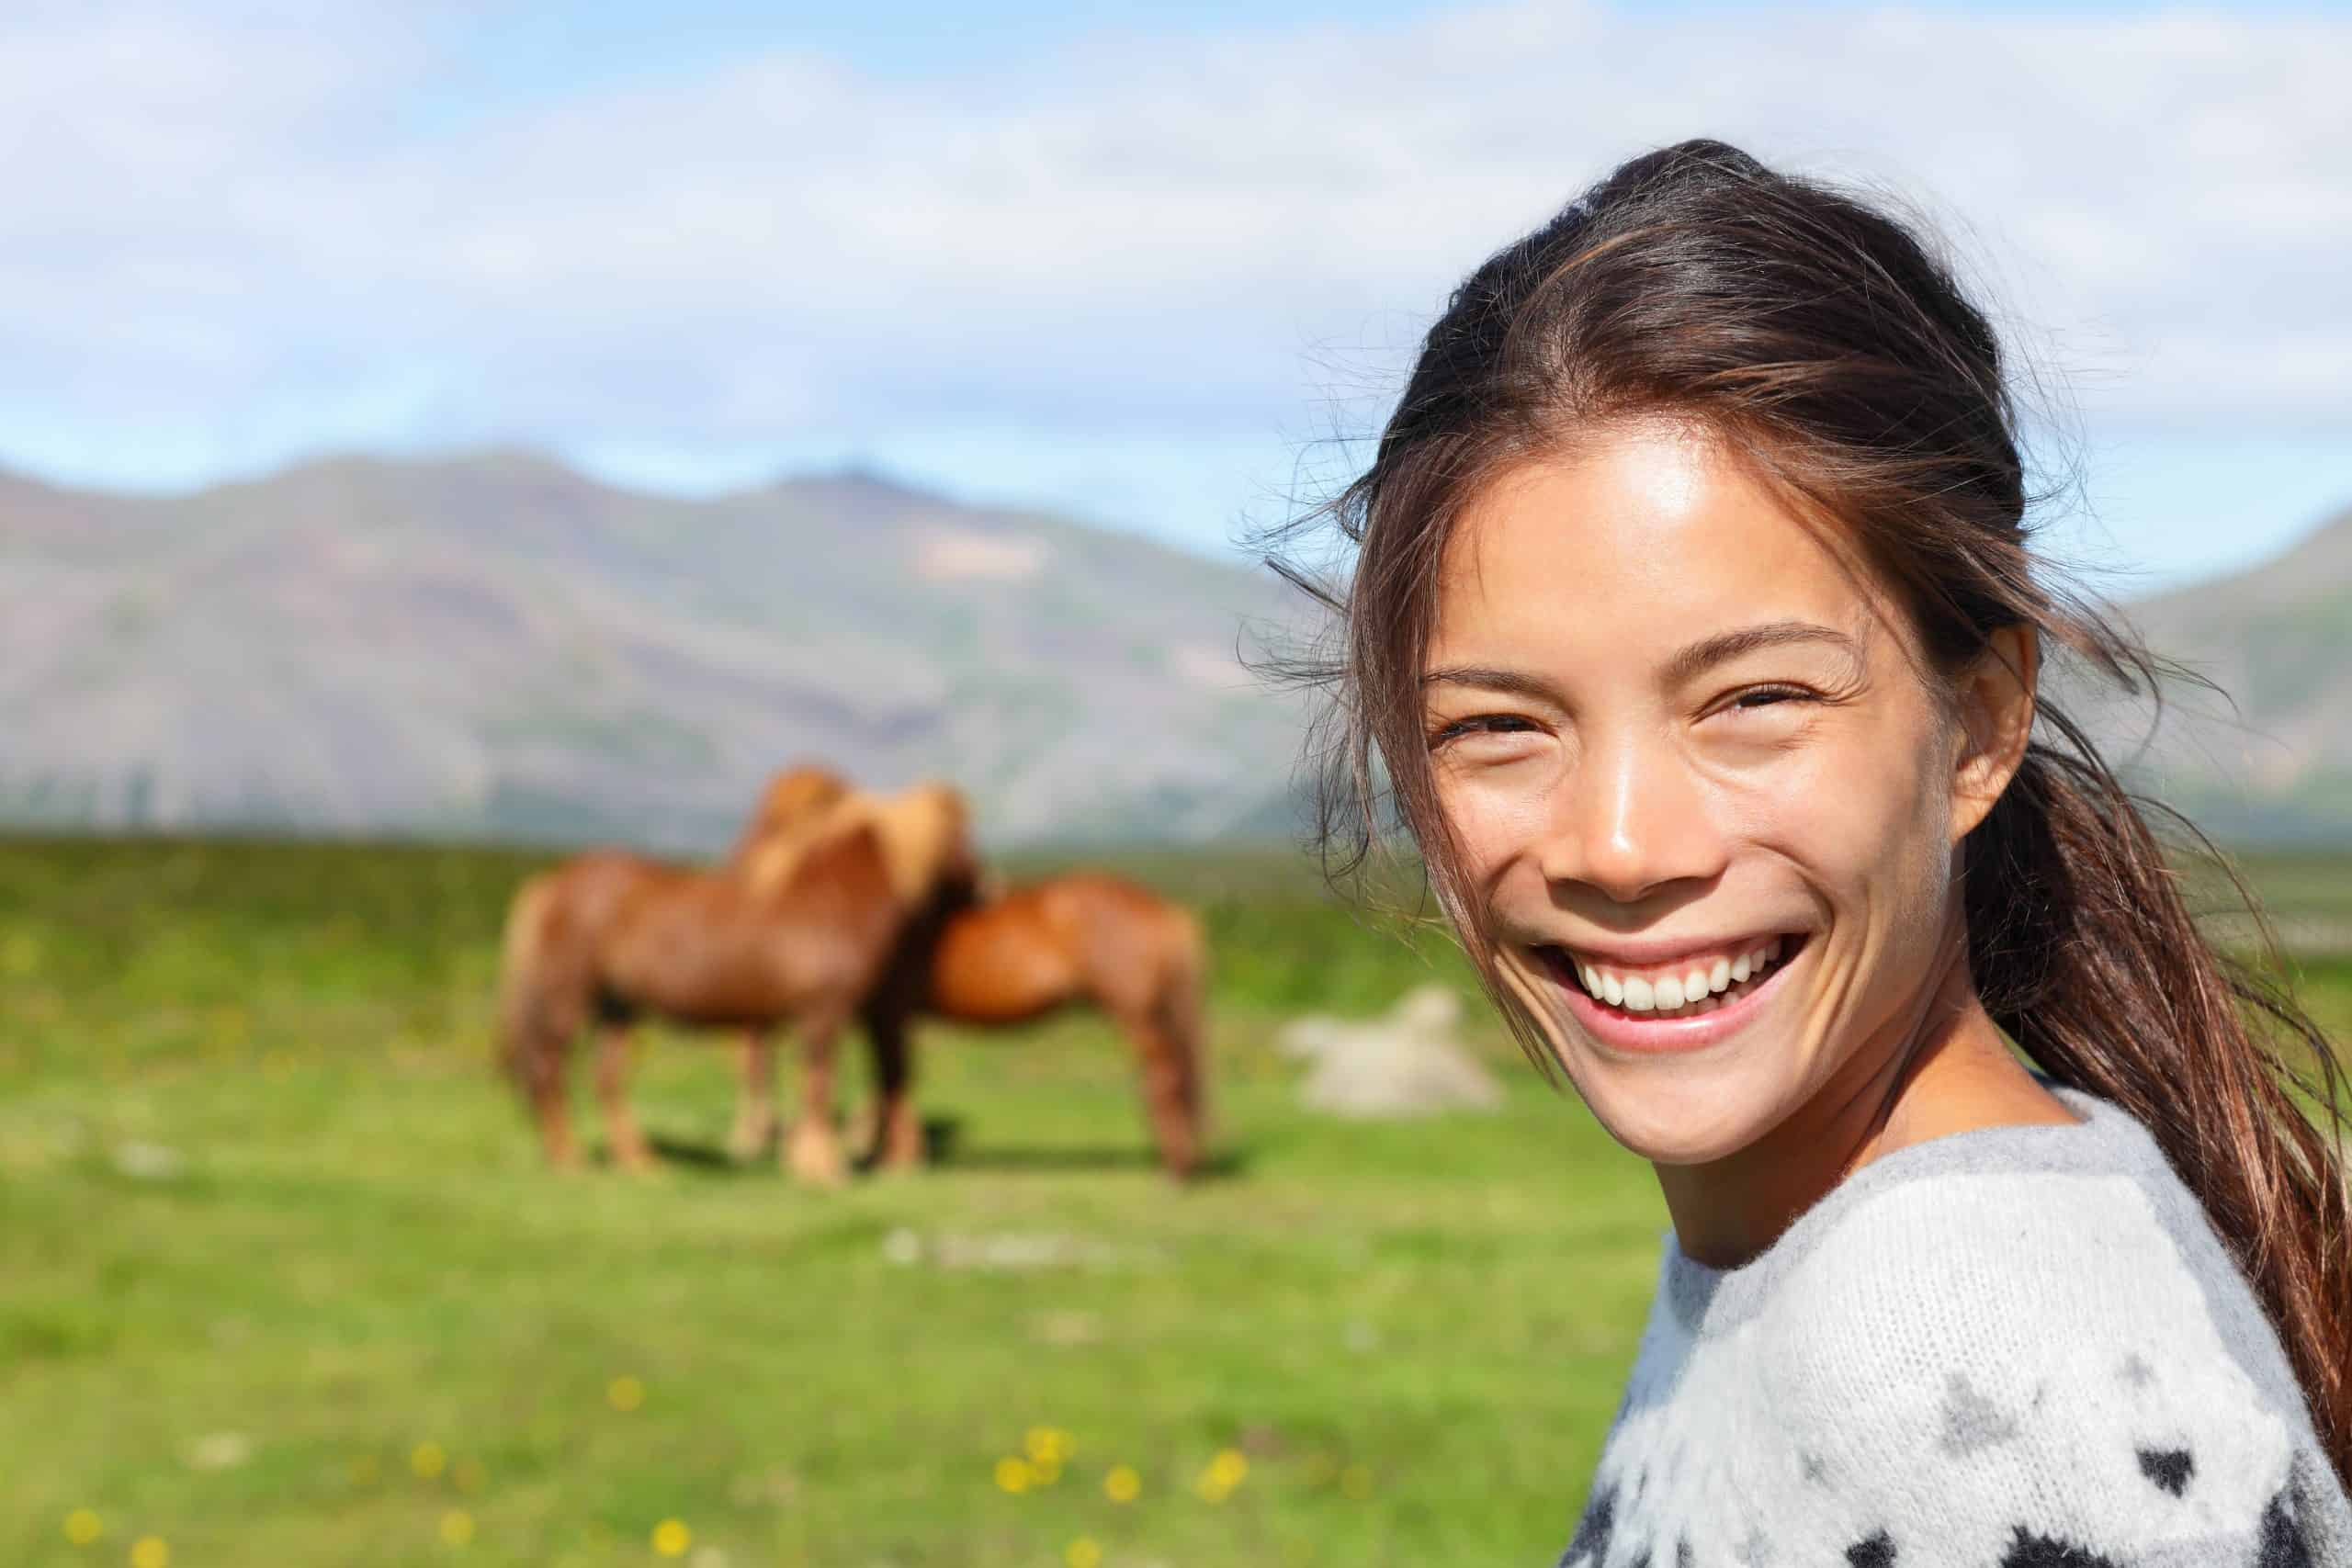 Woman on Iceland smiling with Icelandic horses. Portrait of happy multicultural girl wearing Icelandic sweater standing outdoors in nature field in front of horse.